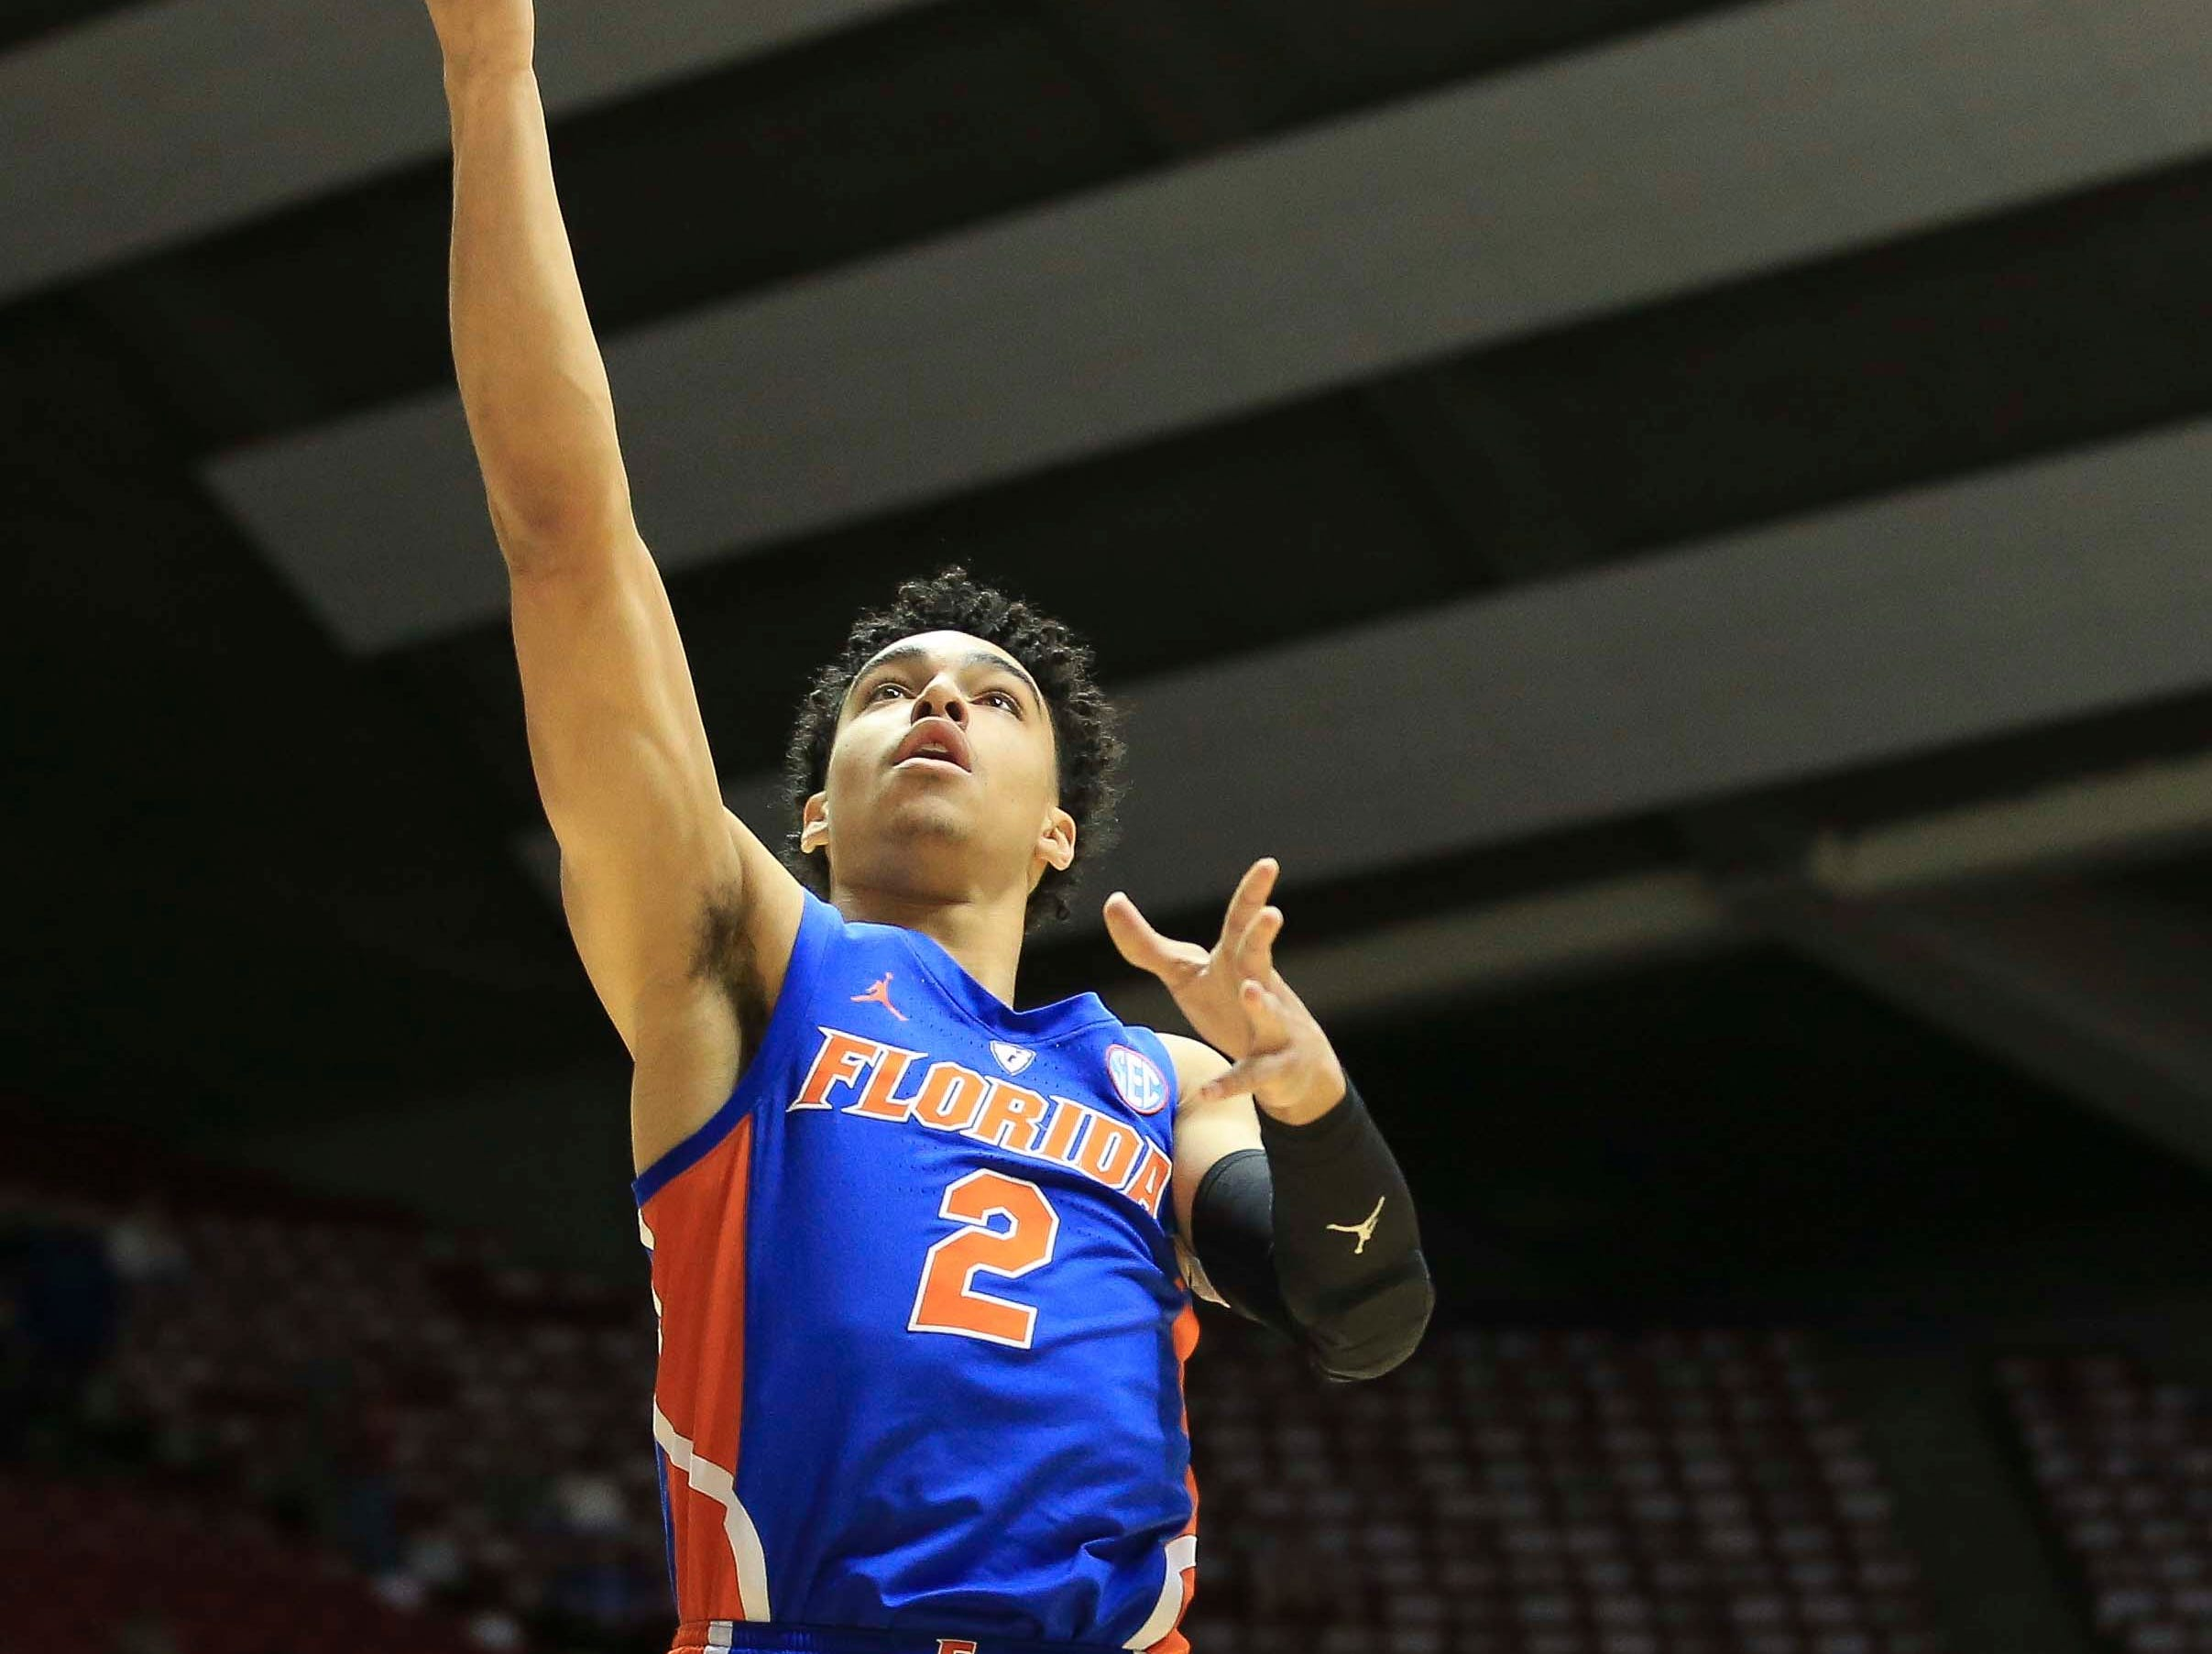 Feb 16, 2019; Tuscaloosa, AL, USA; Florida Gators guard Andrew Nembhard (2) shoots during the first half against Alabama Crimson Tide at Coleman Coliseum. Mandatory Credit: Marvin Gentry-USA TODAY Sports